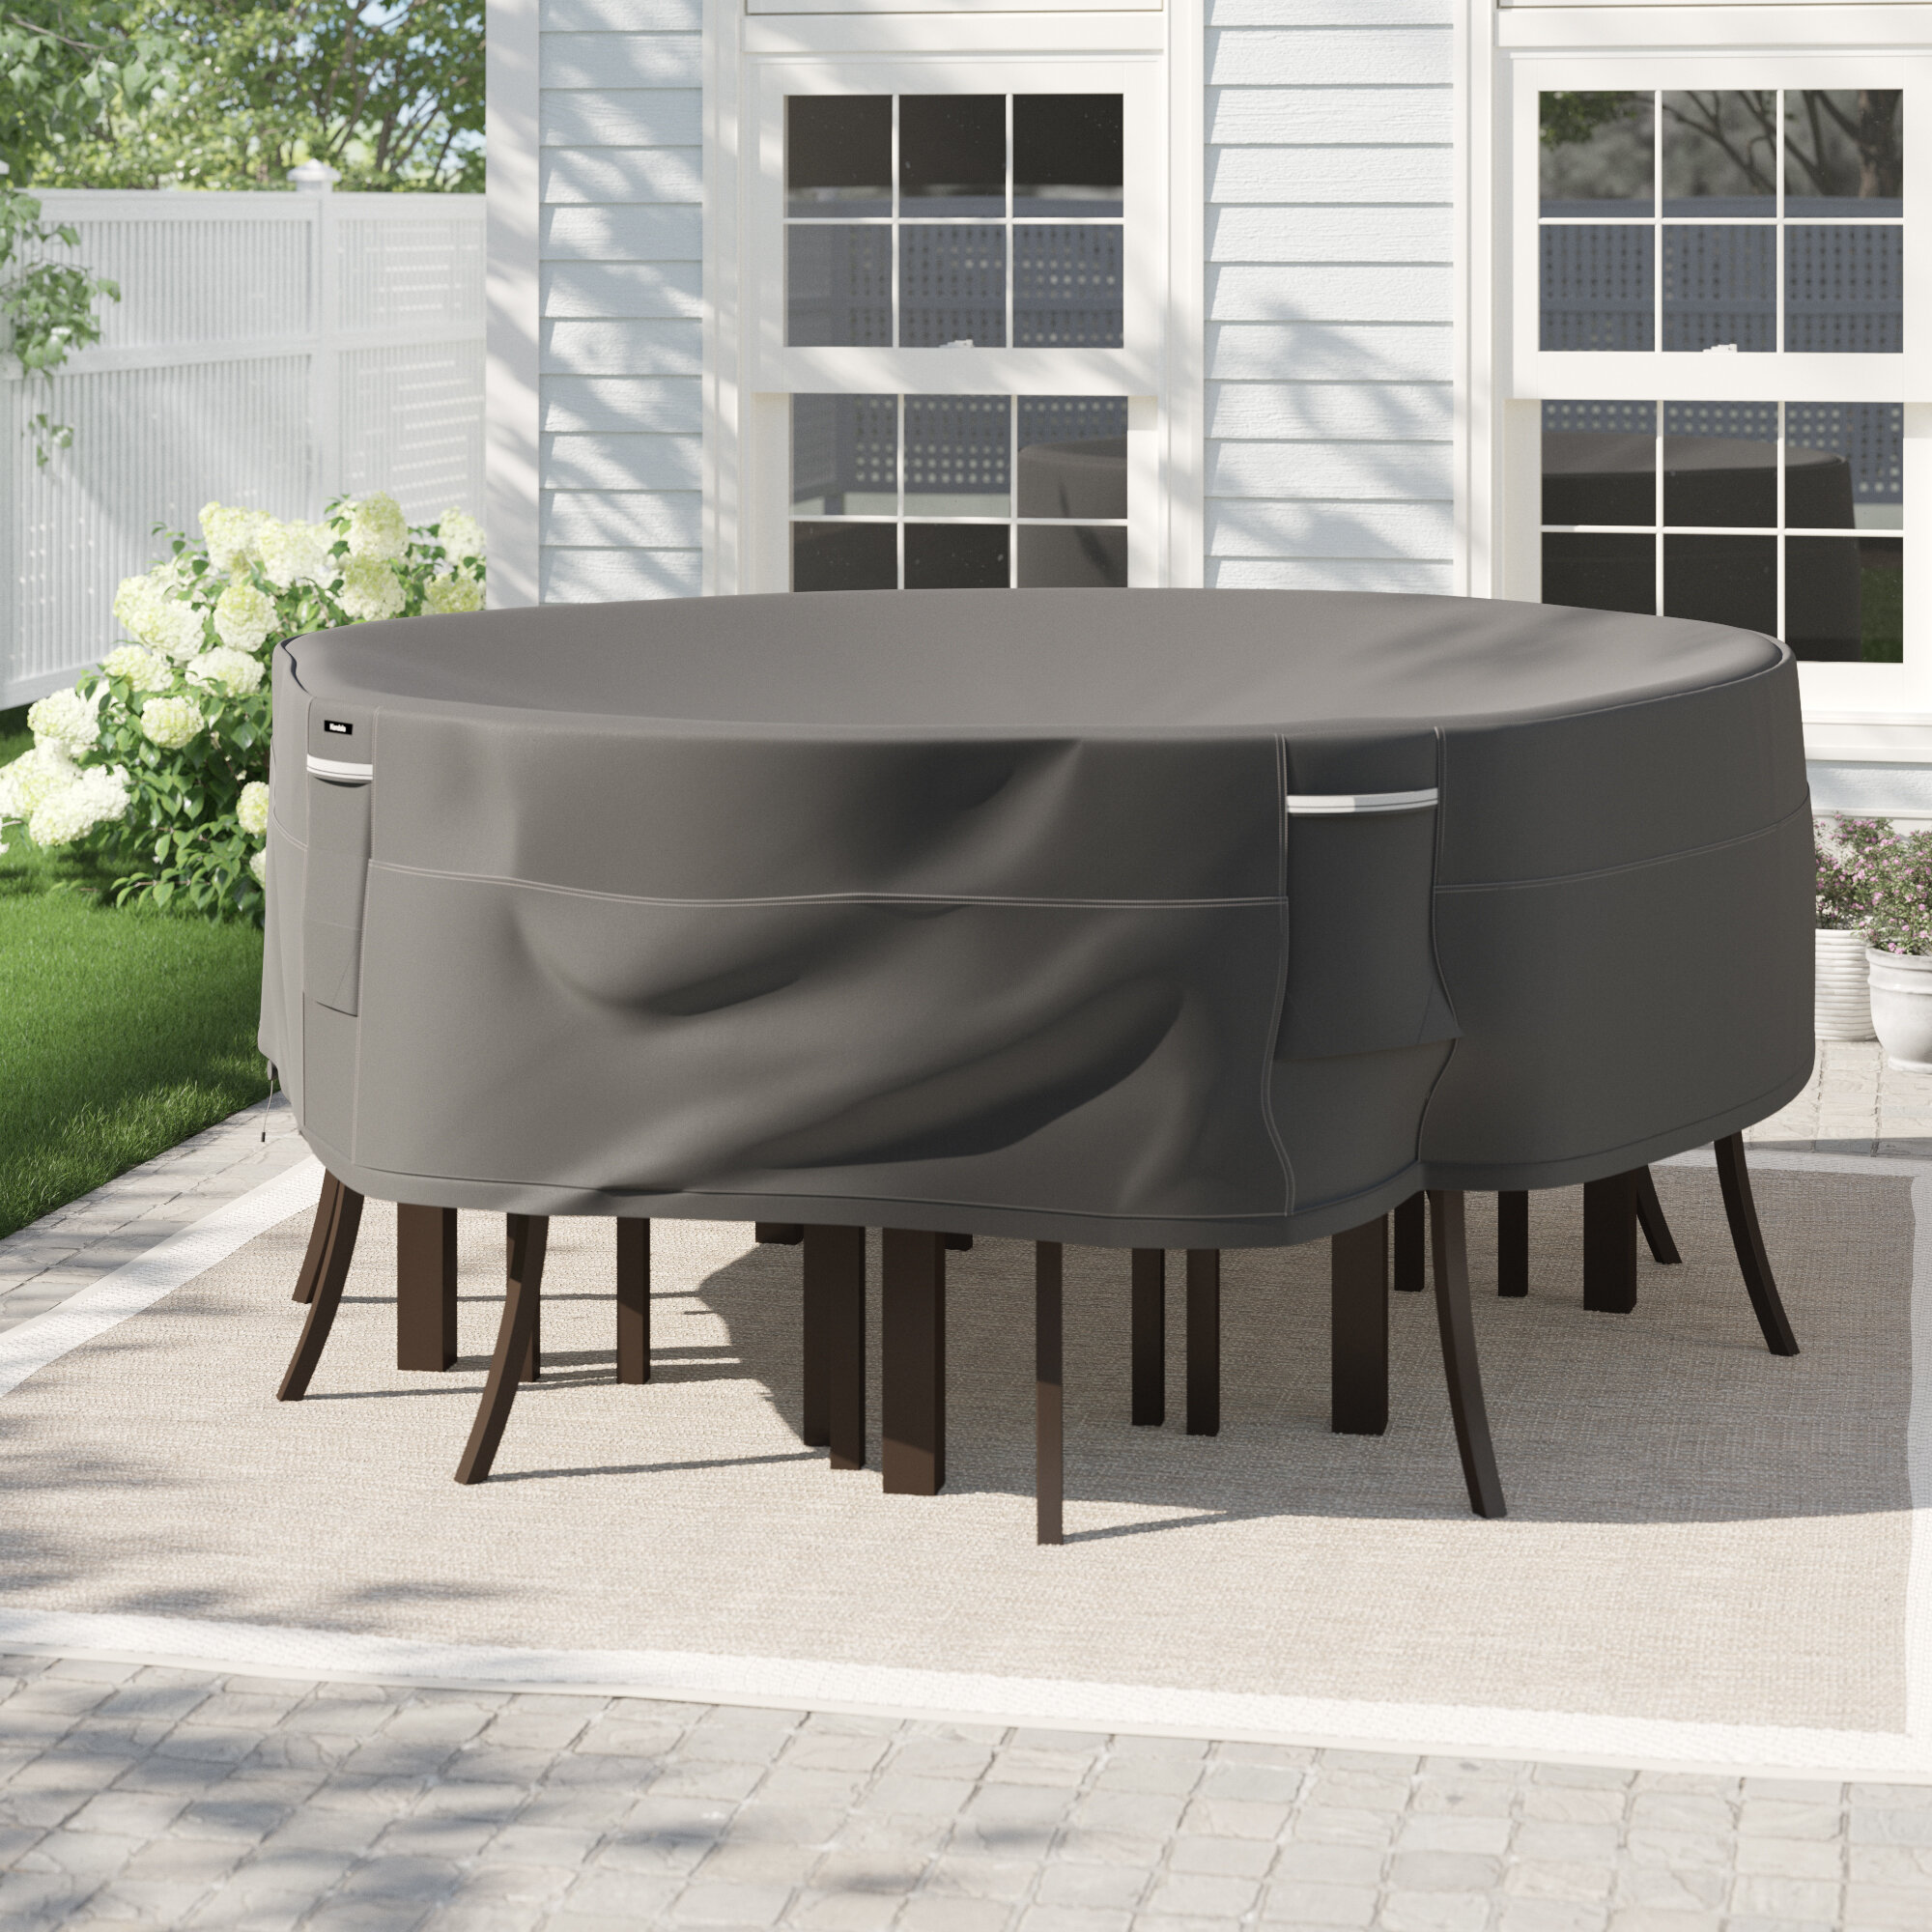 Arlmont Co Round Water Resistant Patio Dining Set Cover Reviews Wayfair